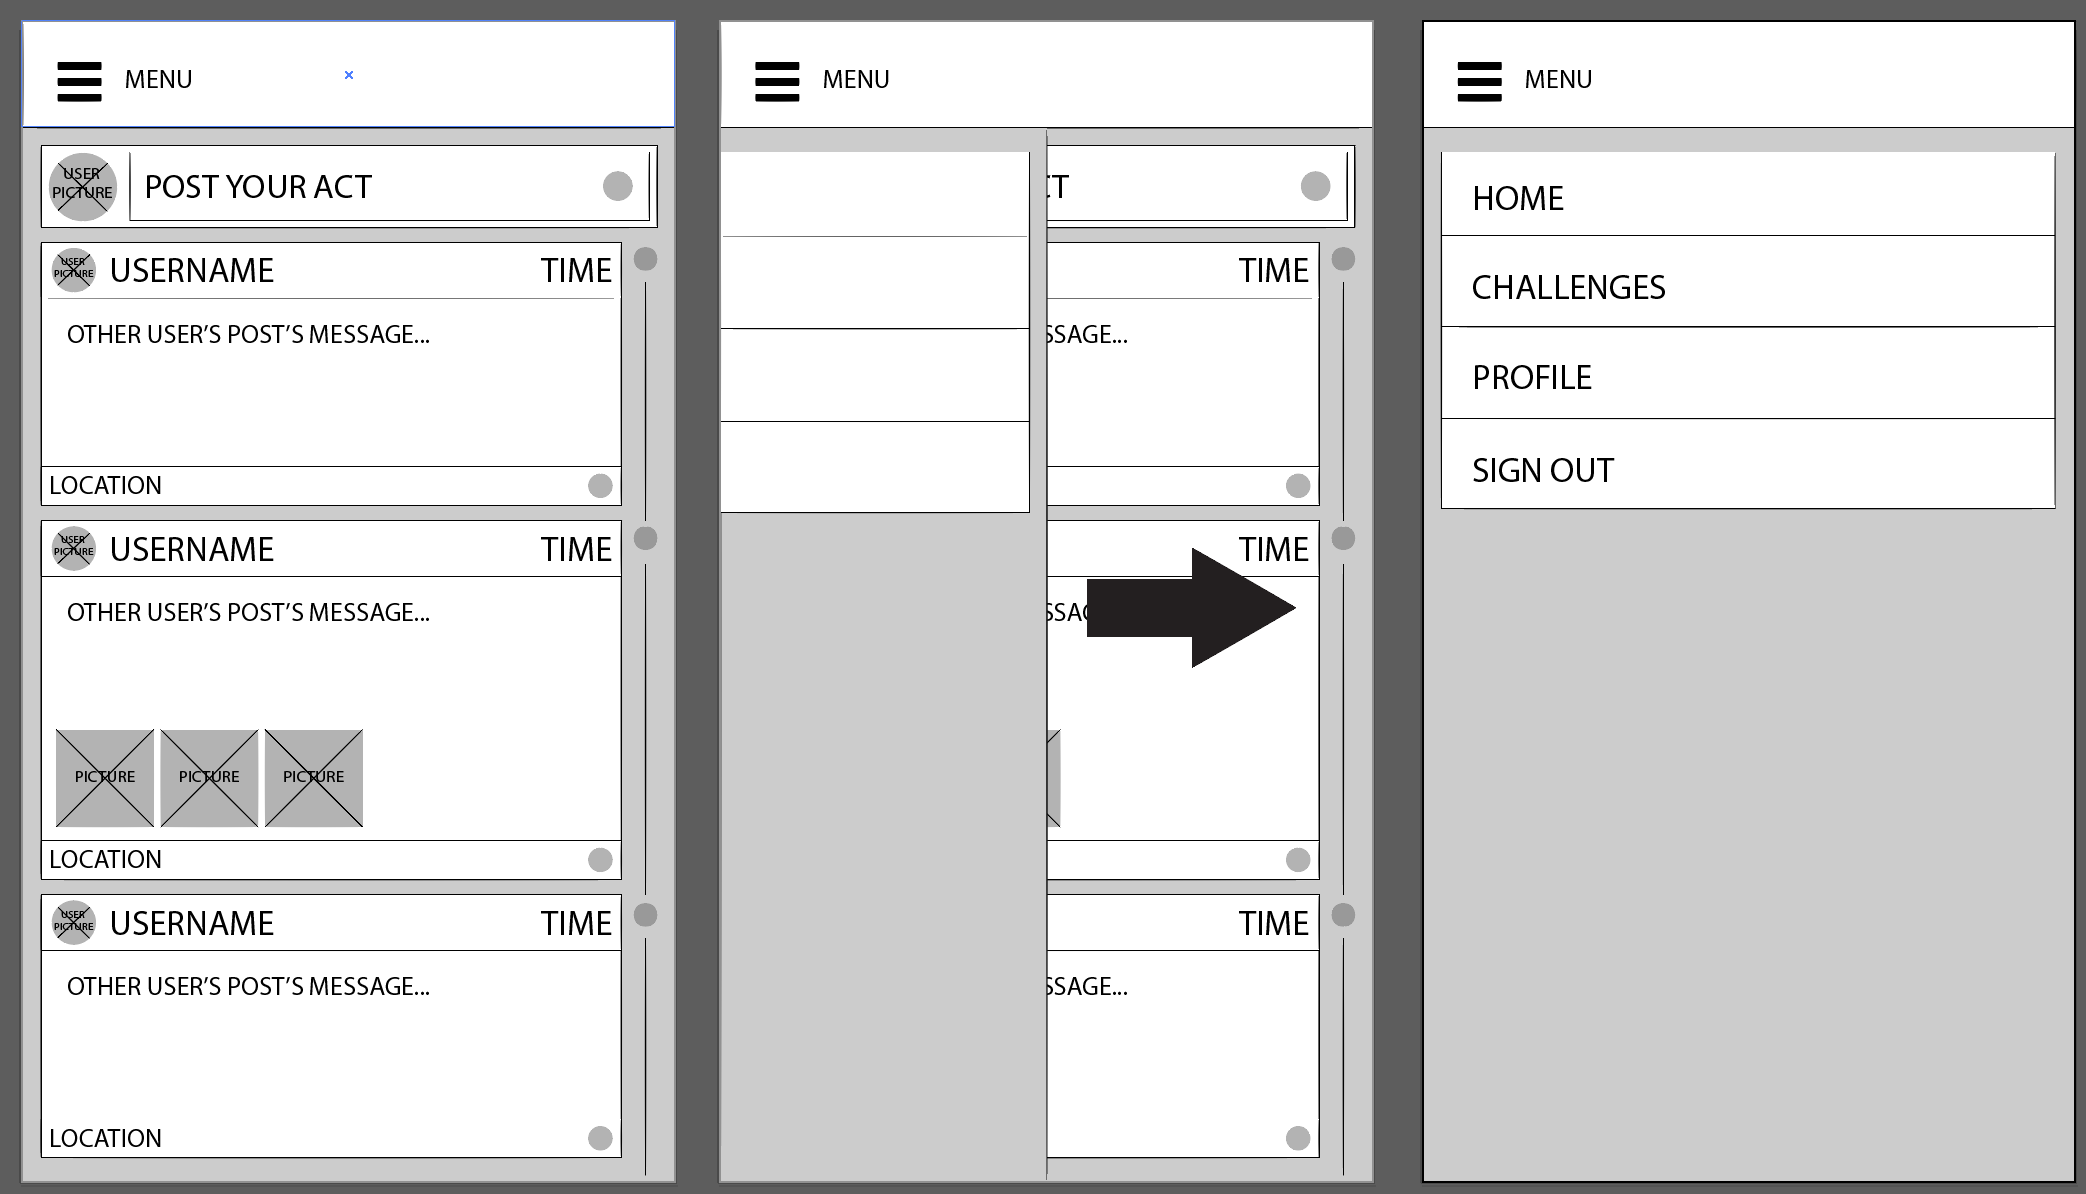 menu wireframes